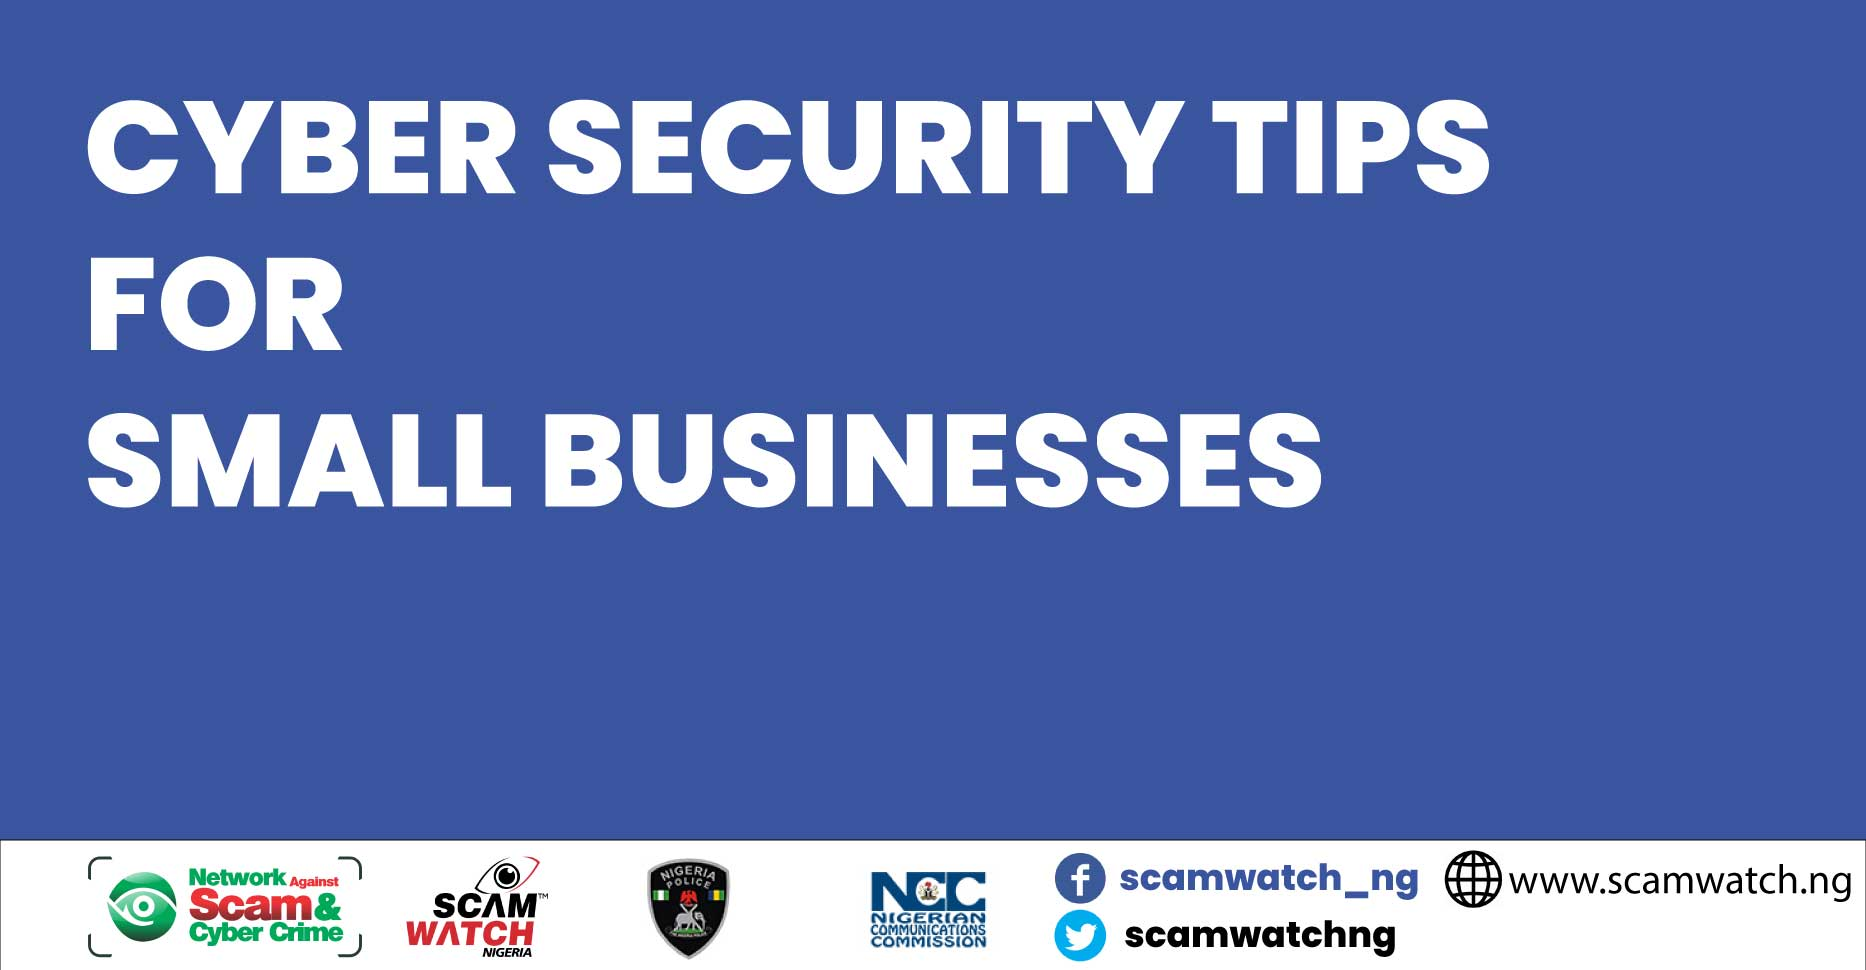 Cyber security awareness tips for Small Businesses